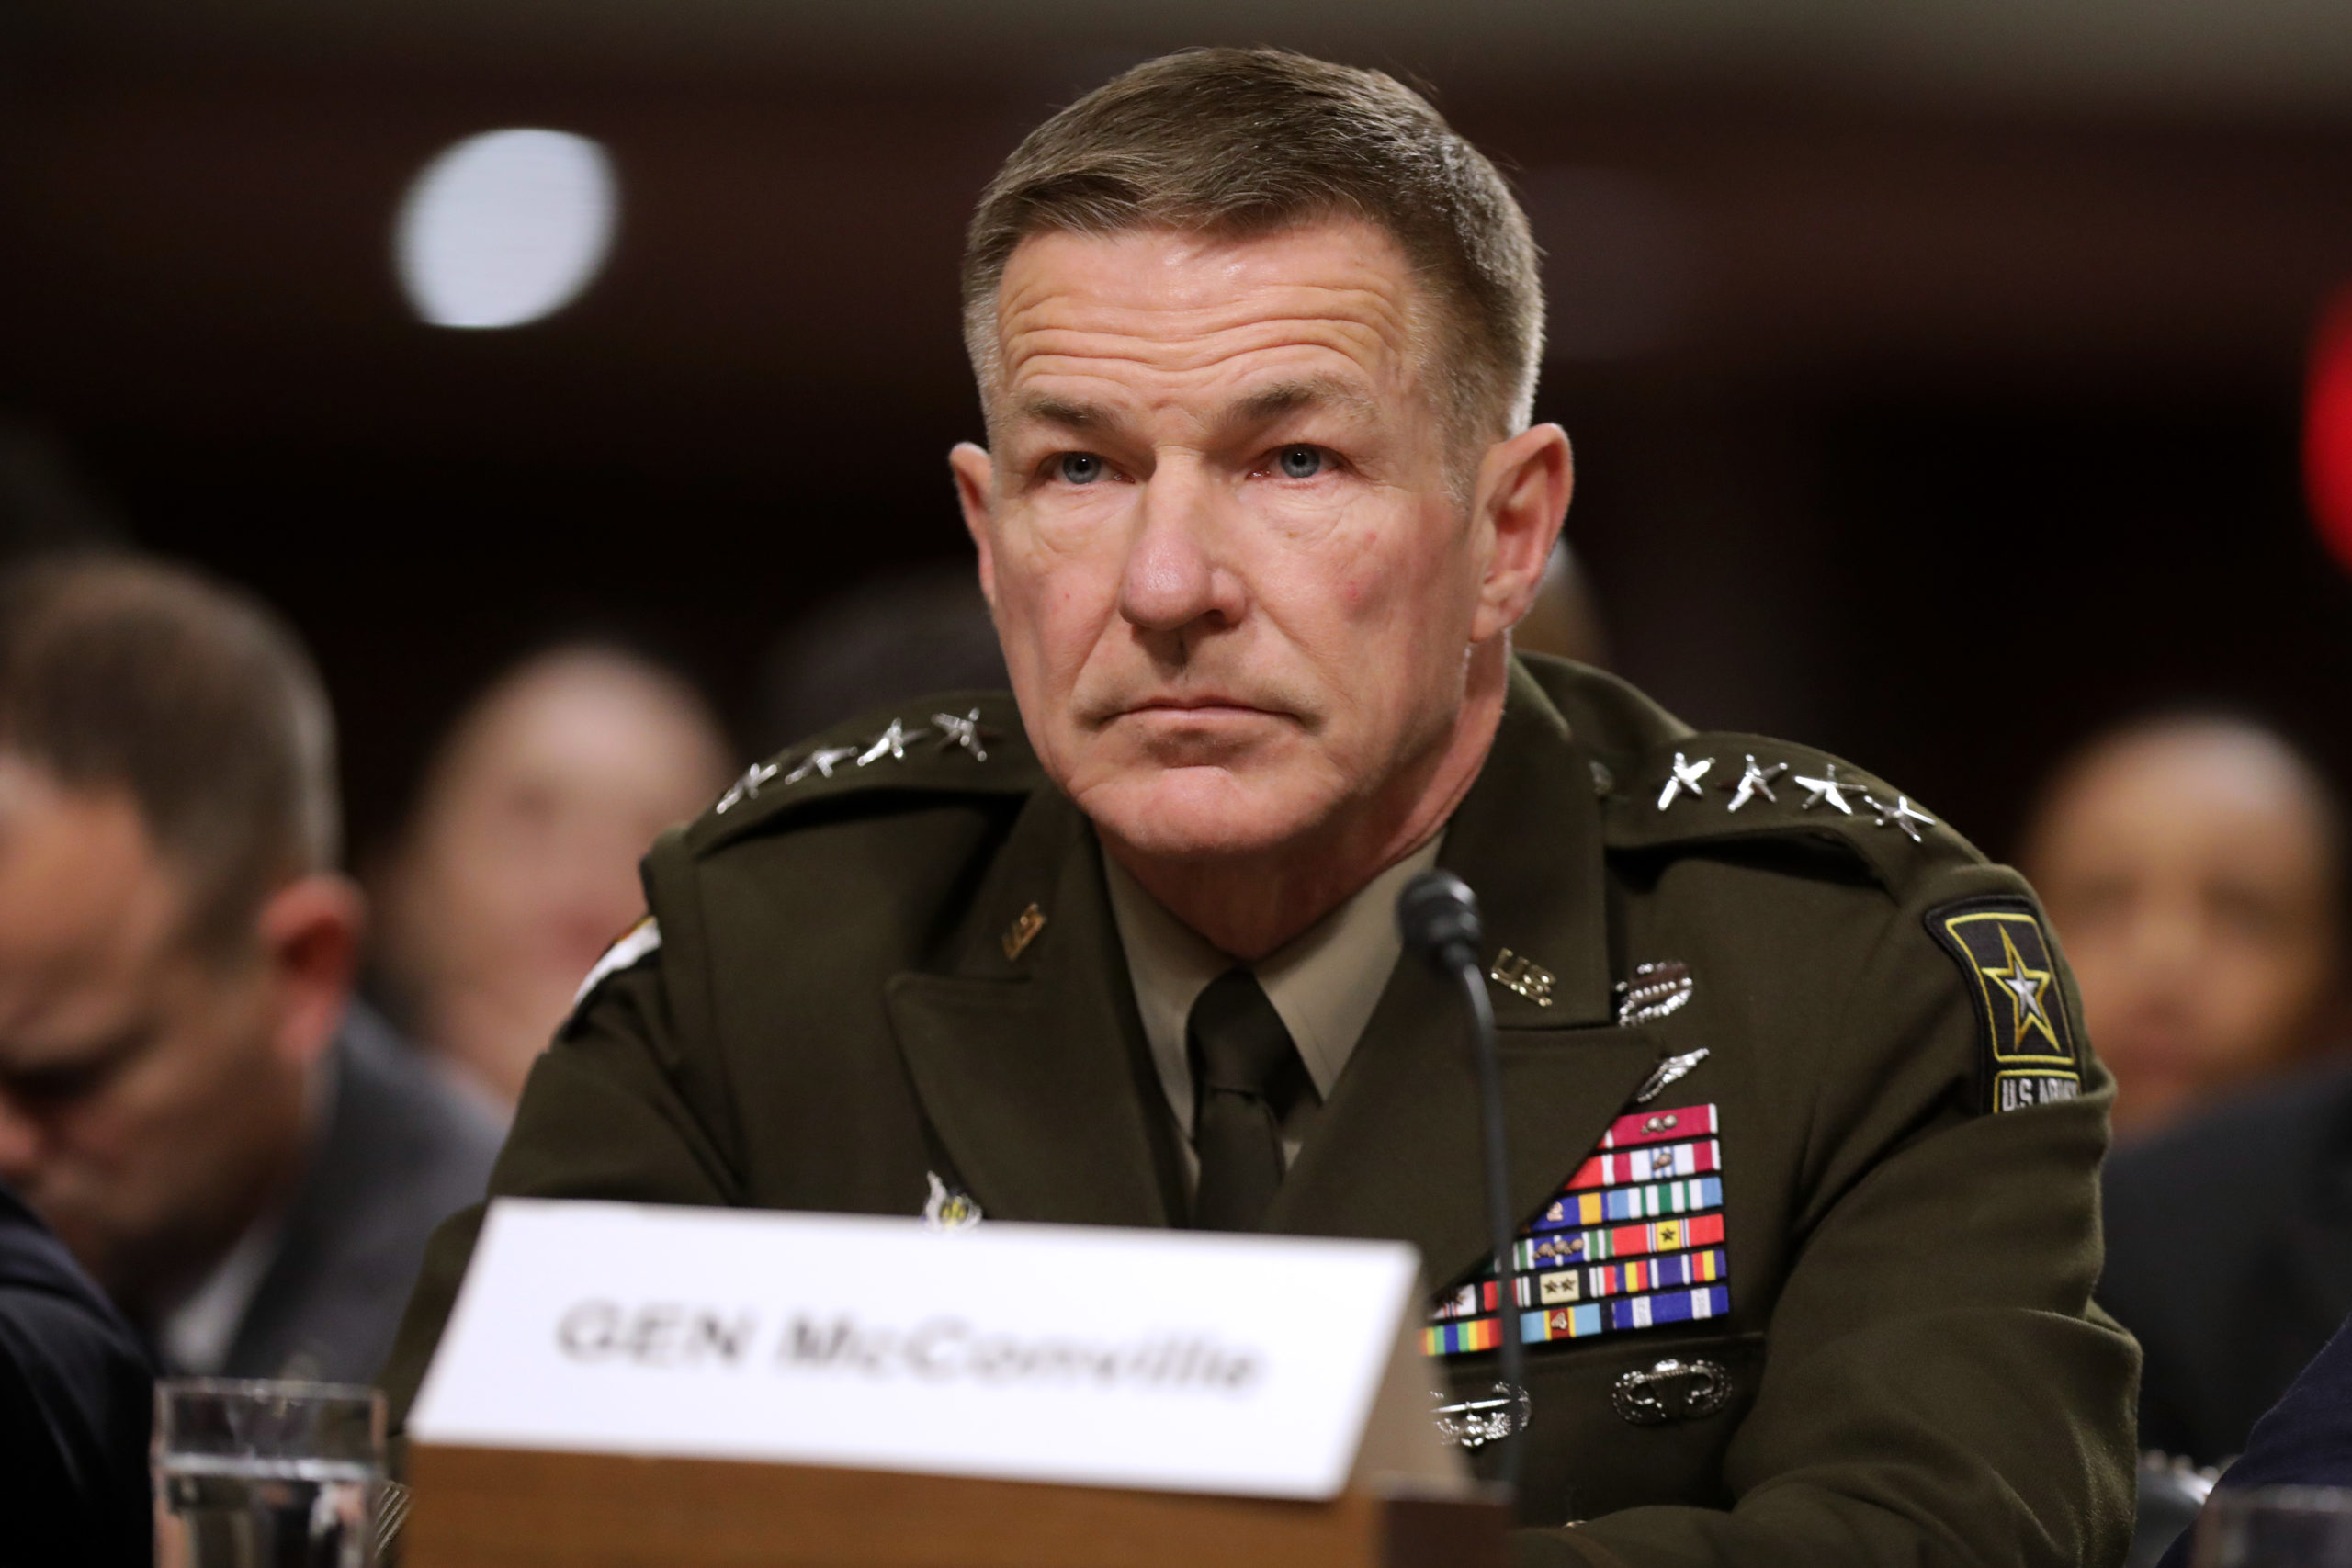 WASHINGTON, DC - DECEMBER 03: Army Chief of Staff Gen. James McConville testifies before the Senate Armed Services Committee in the Dirksen Senate Office Building on Capitol Hill December 03, 2019 in Washington, DC. (Photo by Chip Somodevilla/Getty Images)